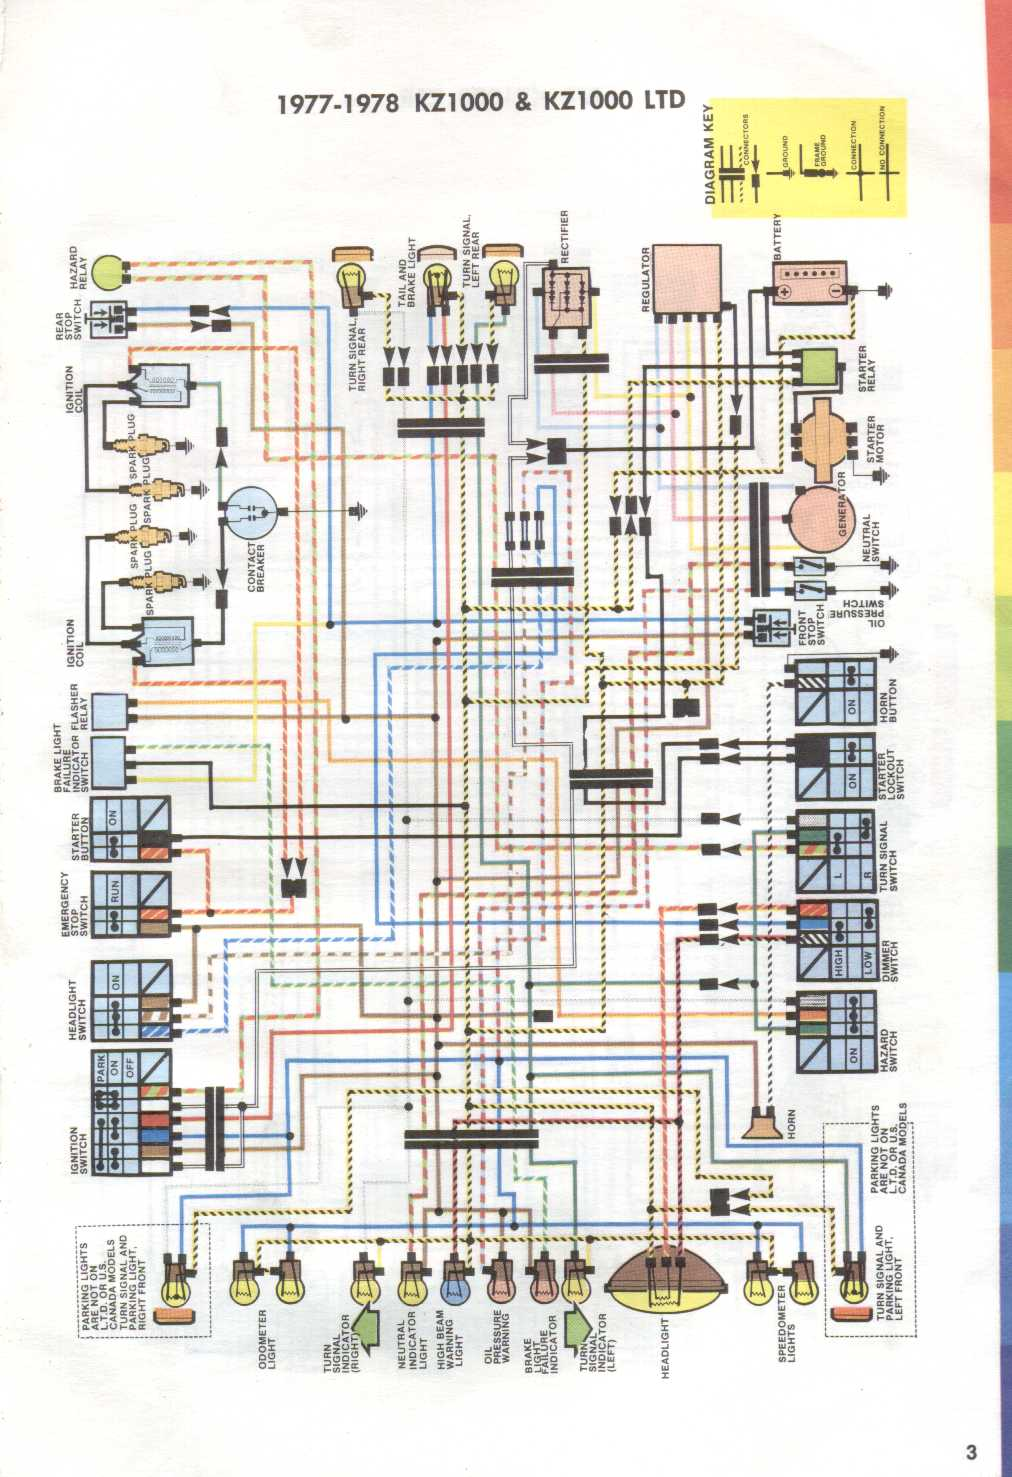 Kz1000 Fuse Diagram Real Wiring 12 Ford F 350 Panel Electrical Evan Fell Motorcycle Worksevan 2012 F350